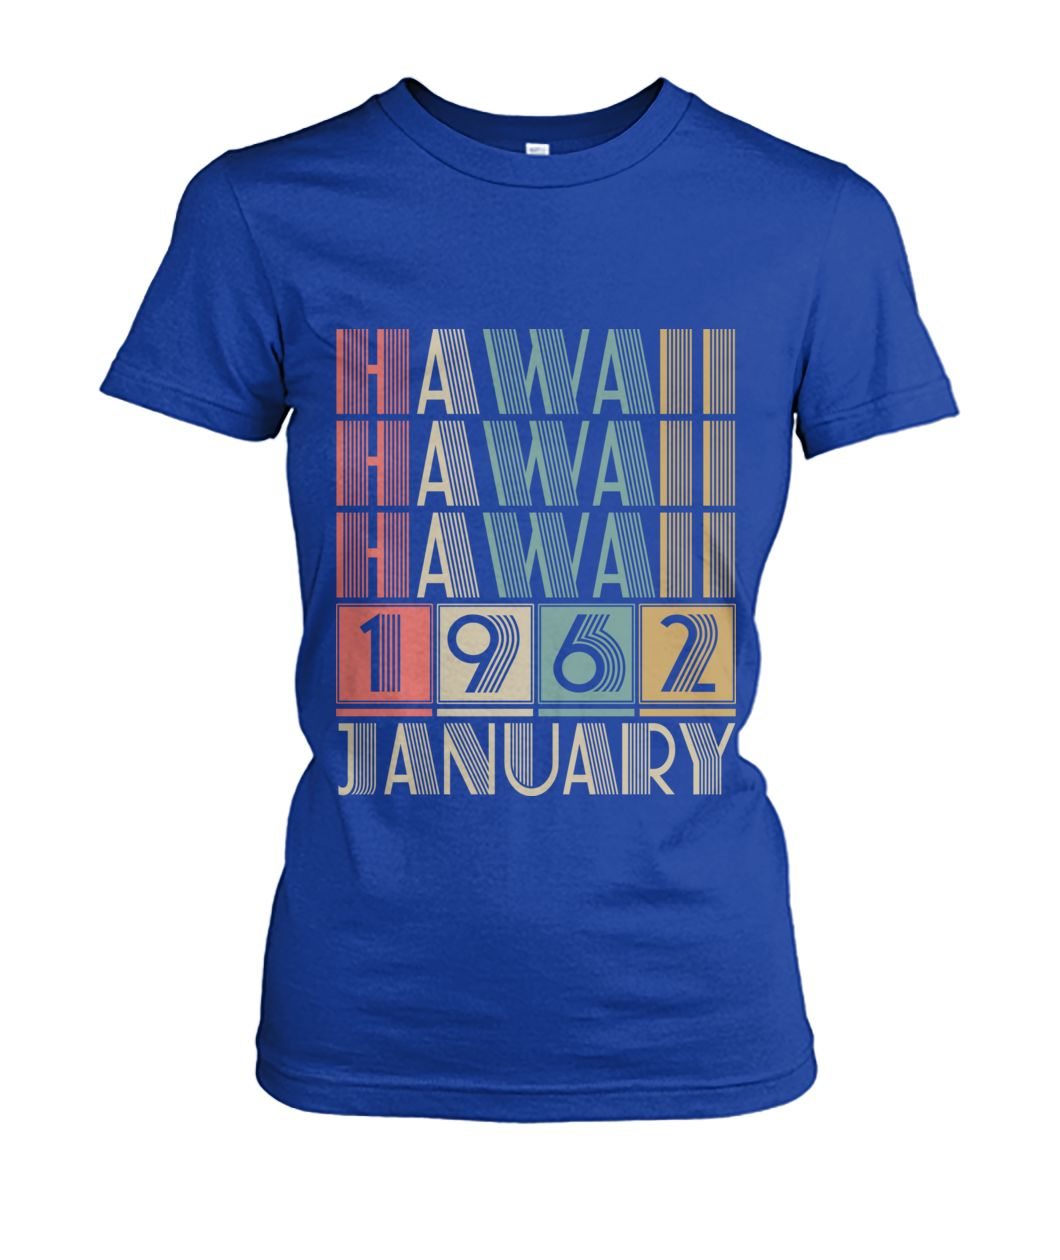 Born in Hawaii in January 1962 t shirt-Short Sleeves - TEEHOT.COM